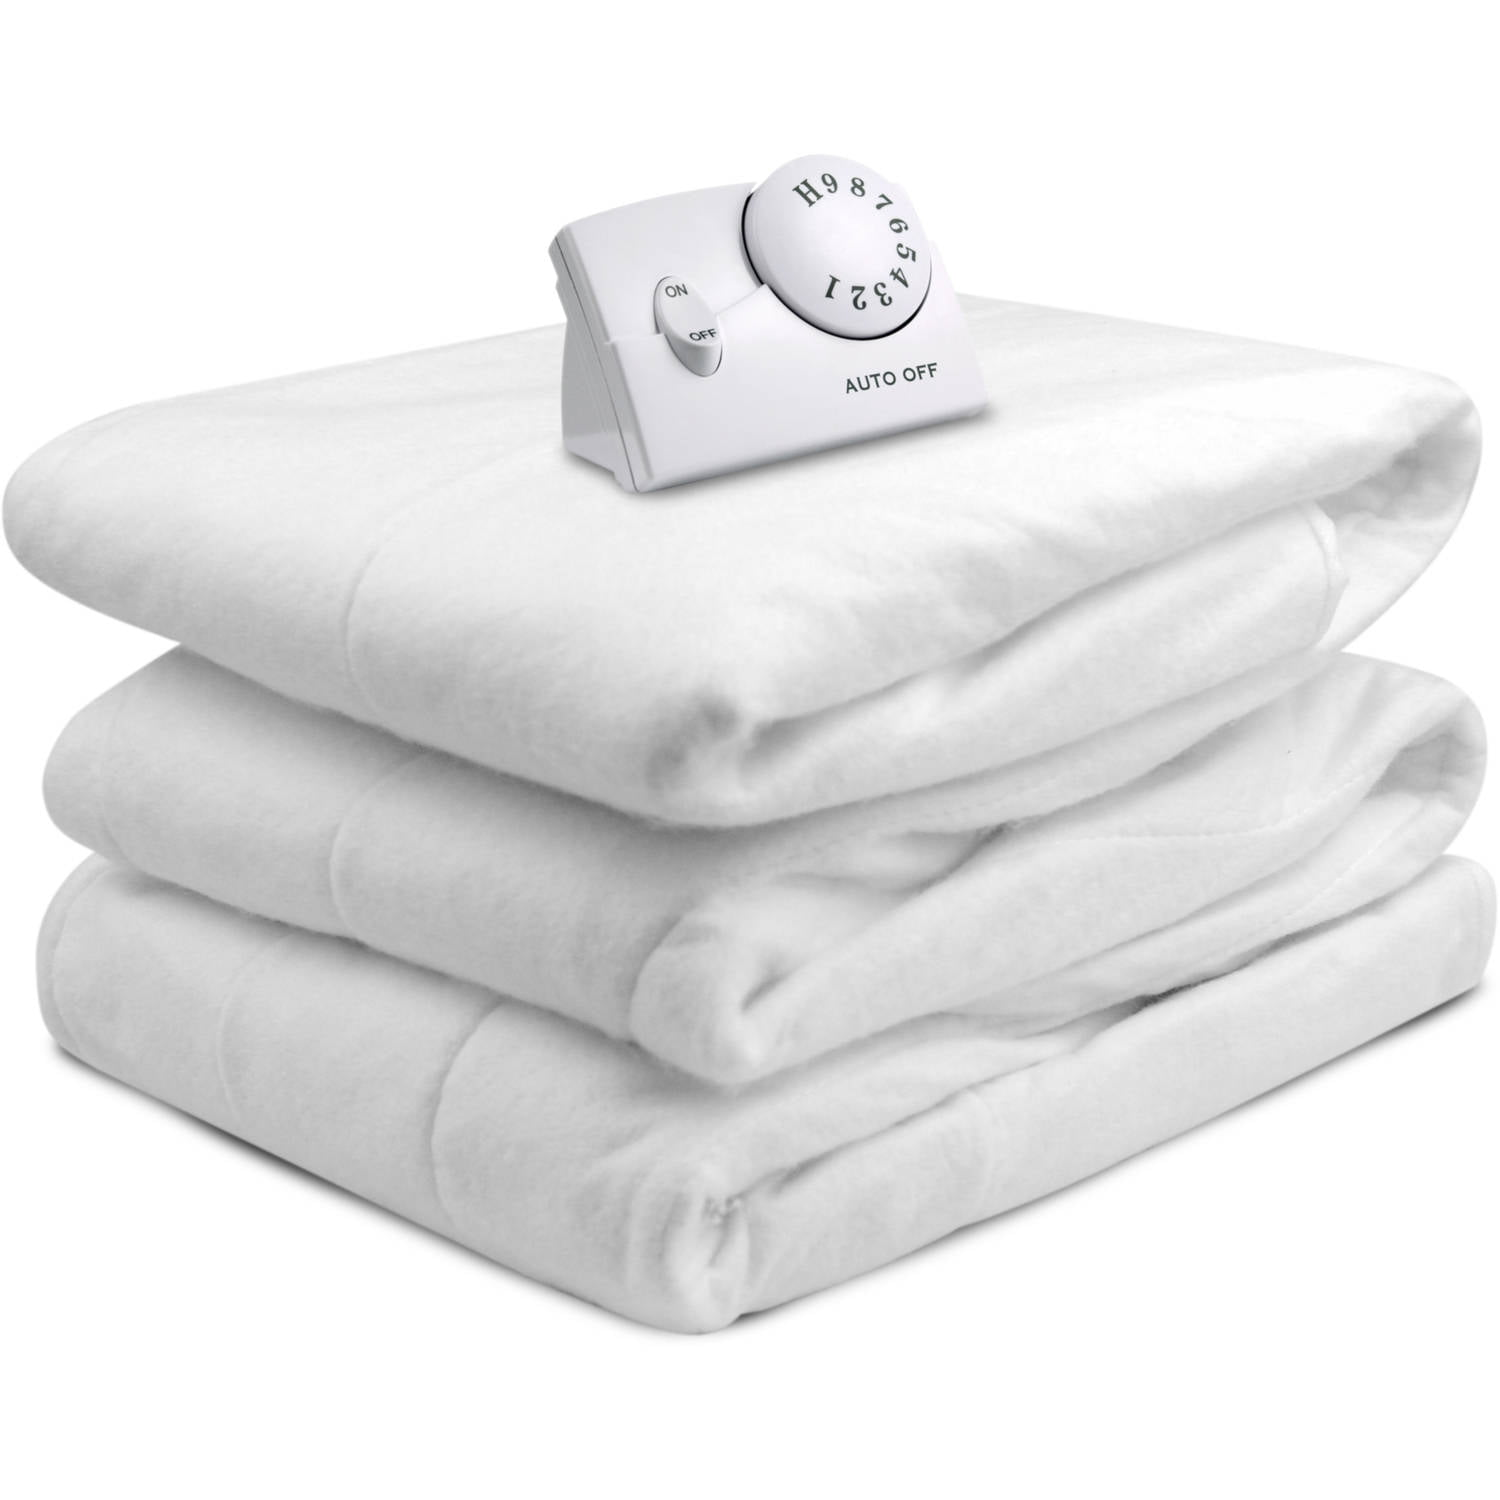 Biddeford Heated Mattress Pad, 1 Each White Twin   Walmart.